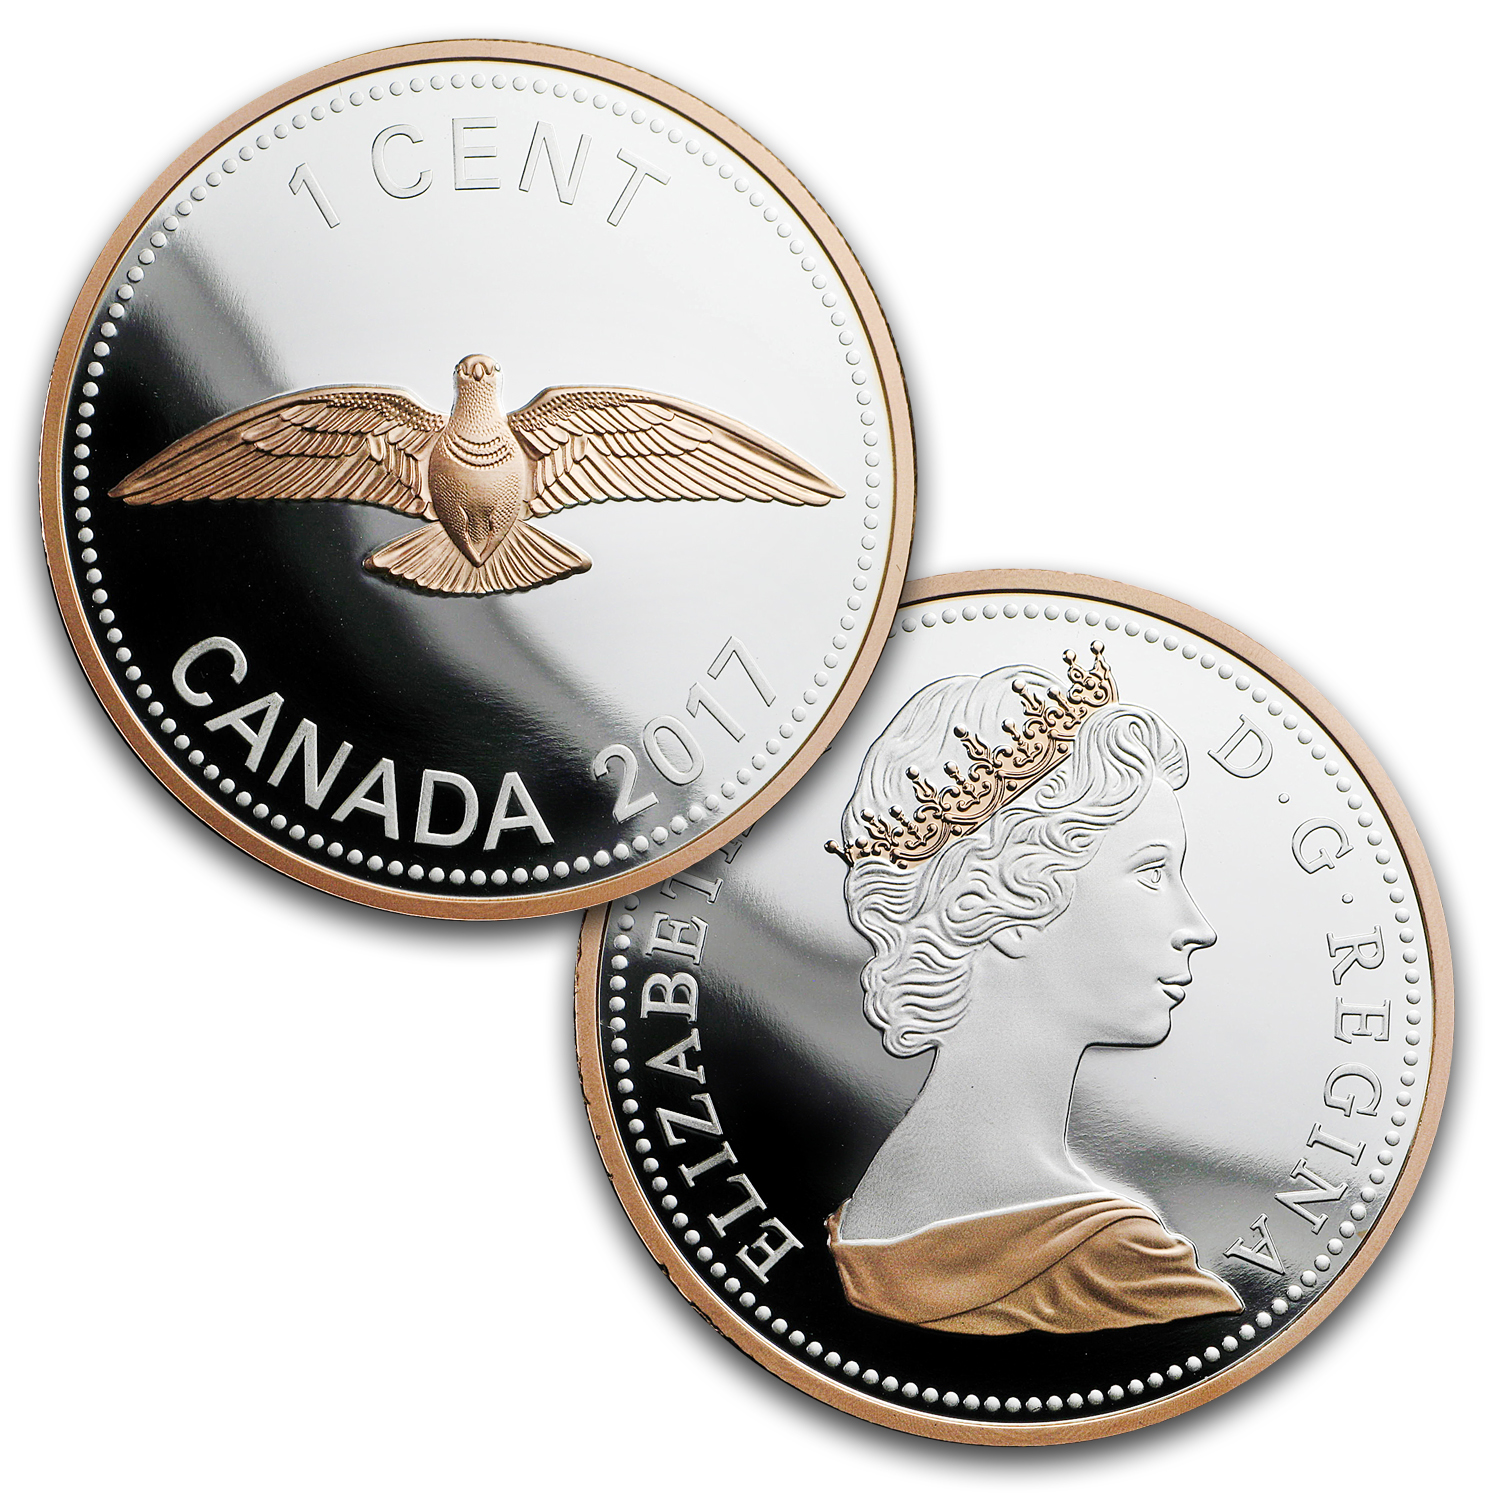 2017 Canada Legacy of the Penny Silver Proof Set